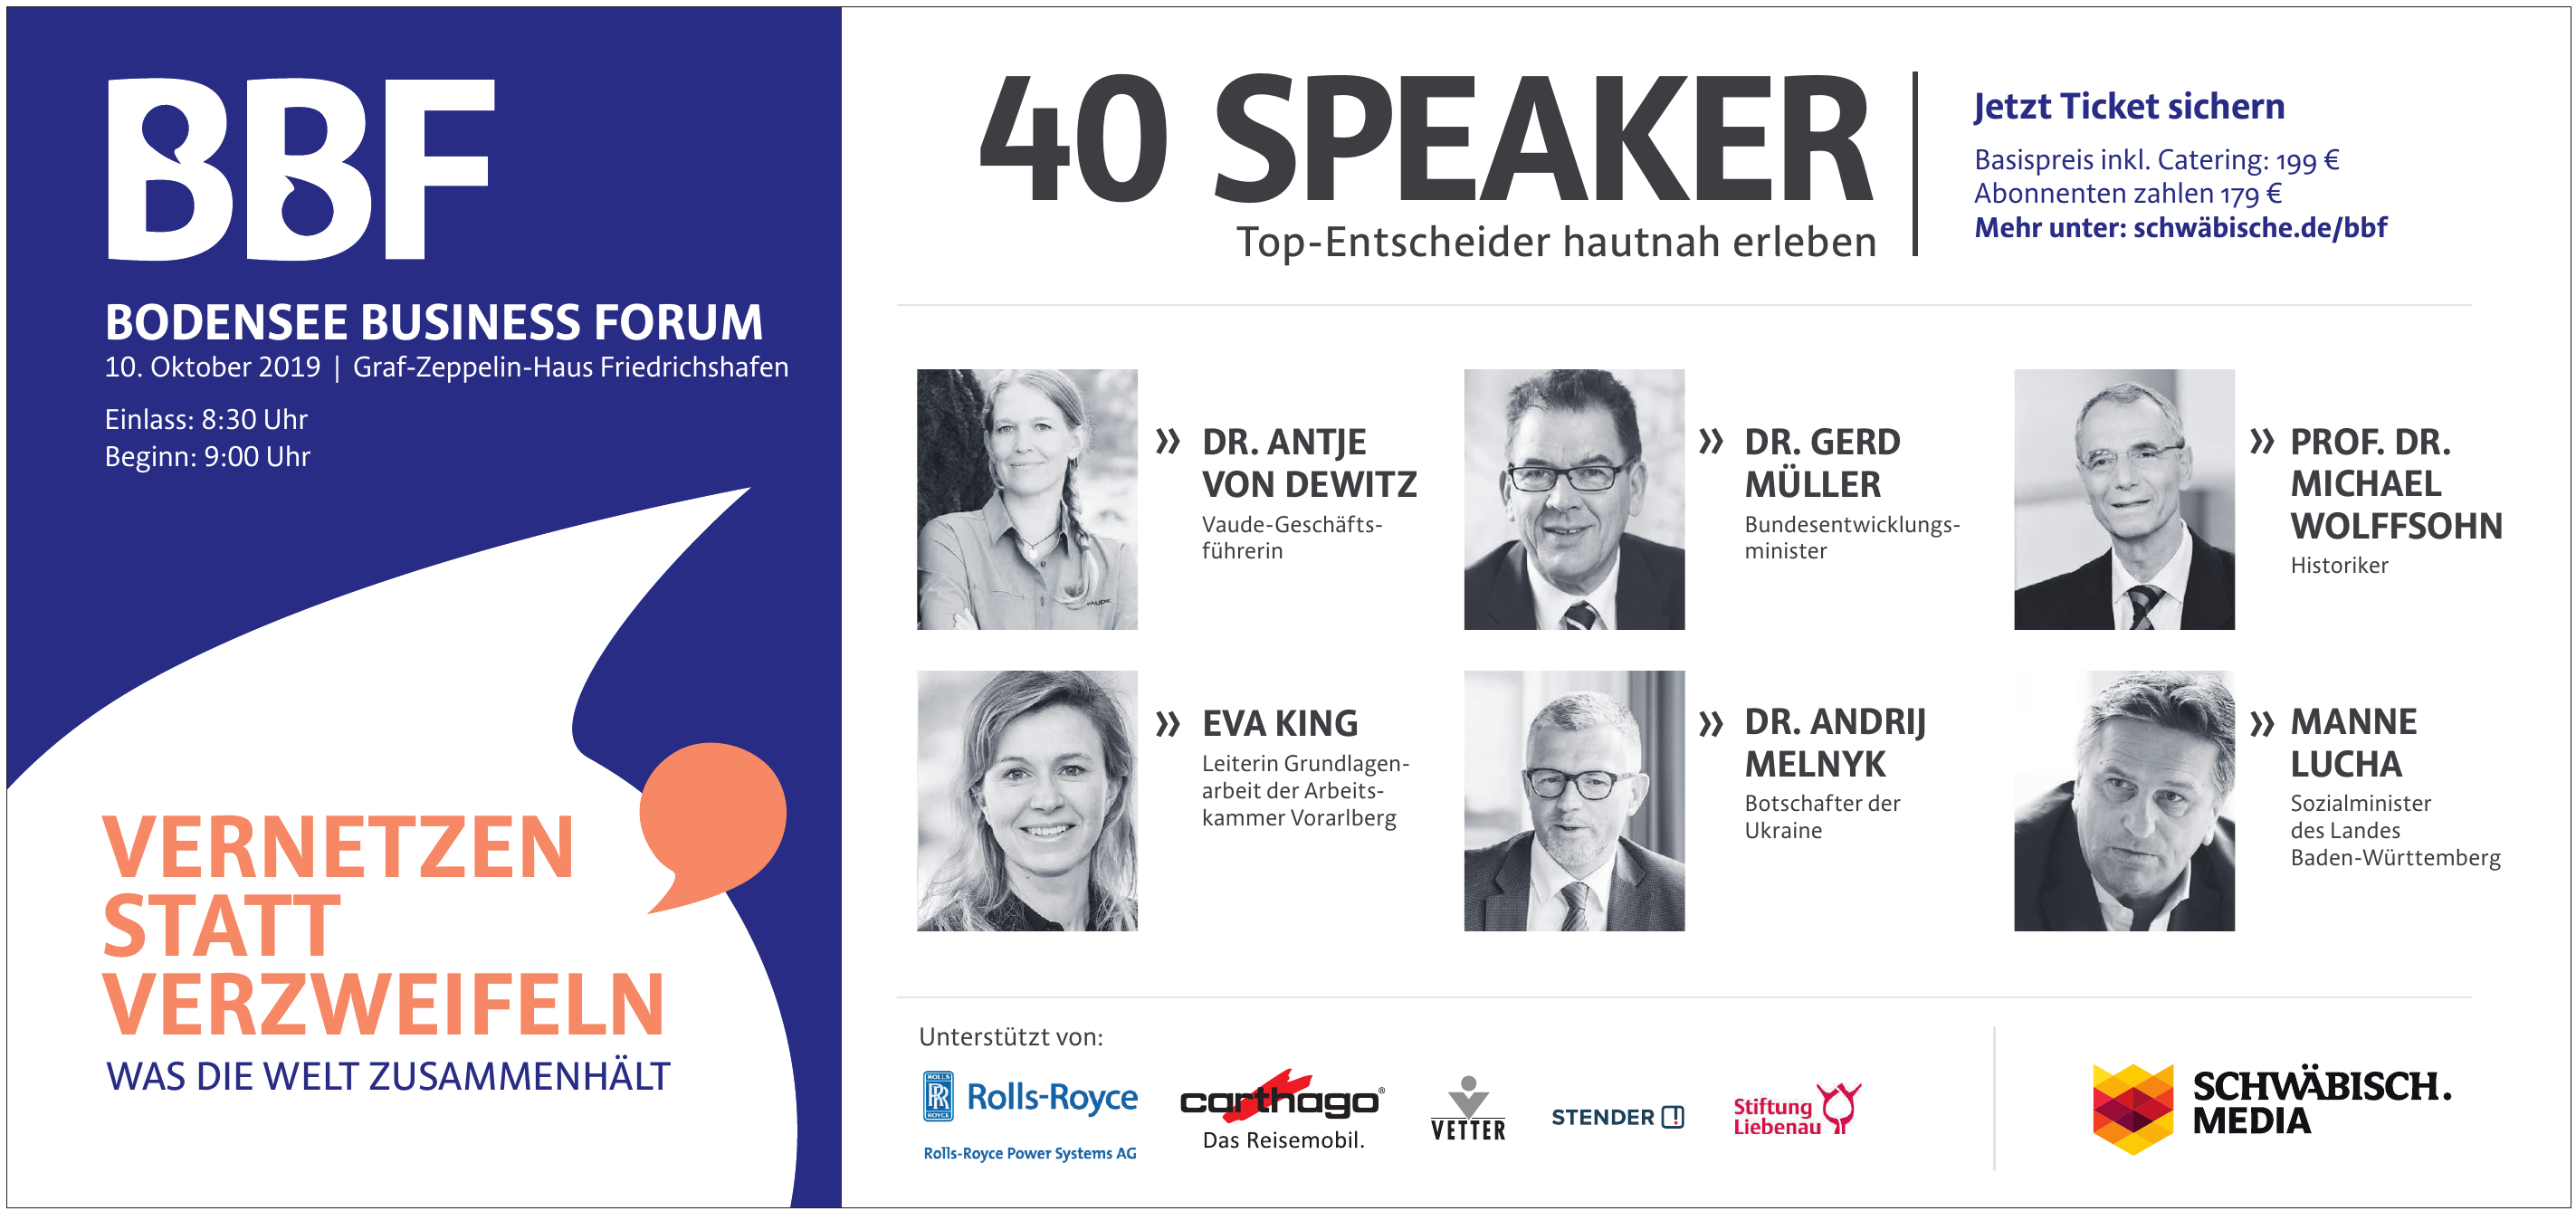 BBF Bodensee Business Forum